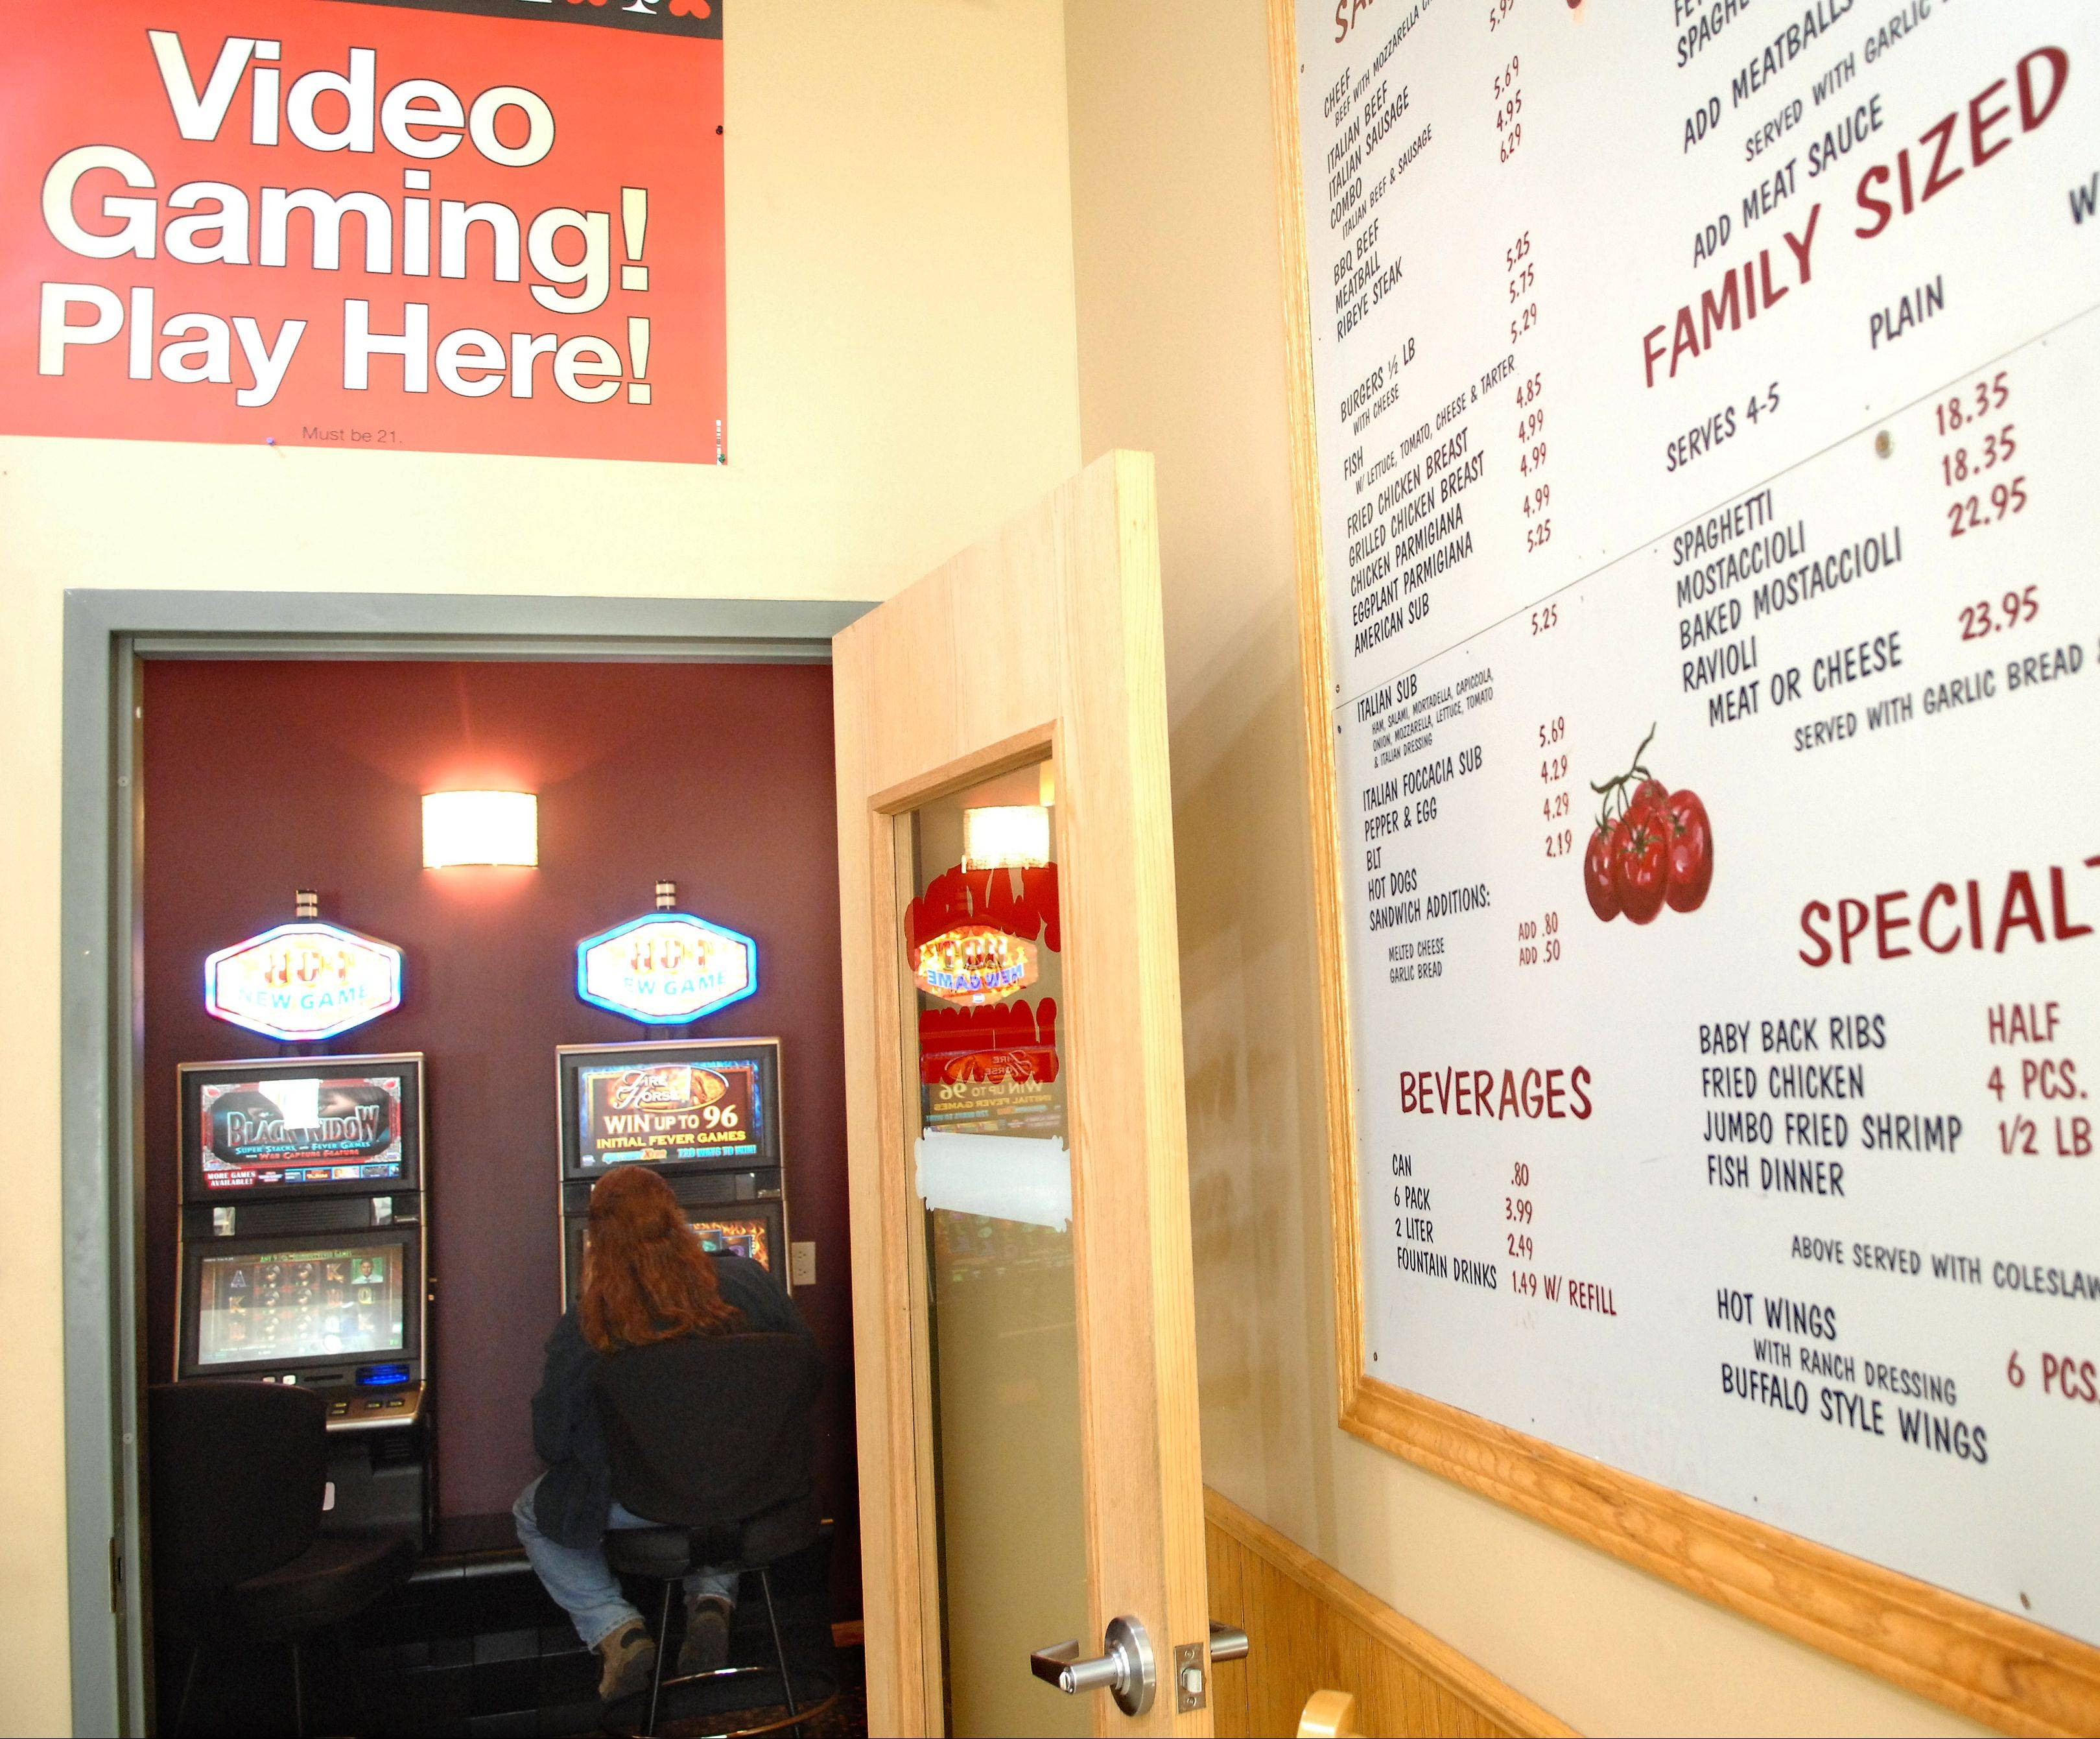 A lunchtime customer plays a video gambling machine at Rosati's in Lakemoor. Money from the machines is helping to ease the business's financial struggles, the owner says.